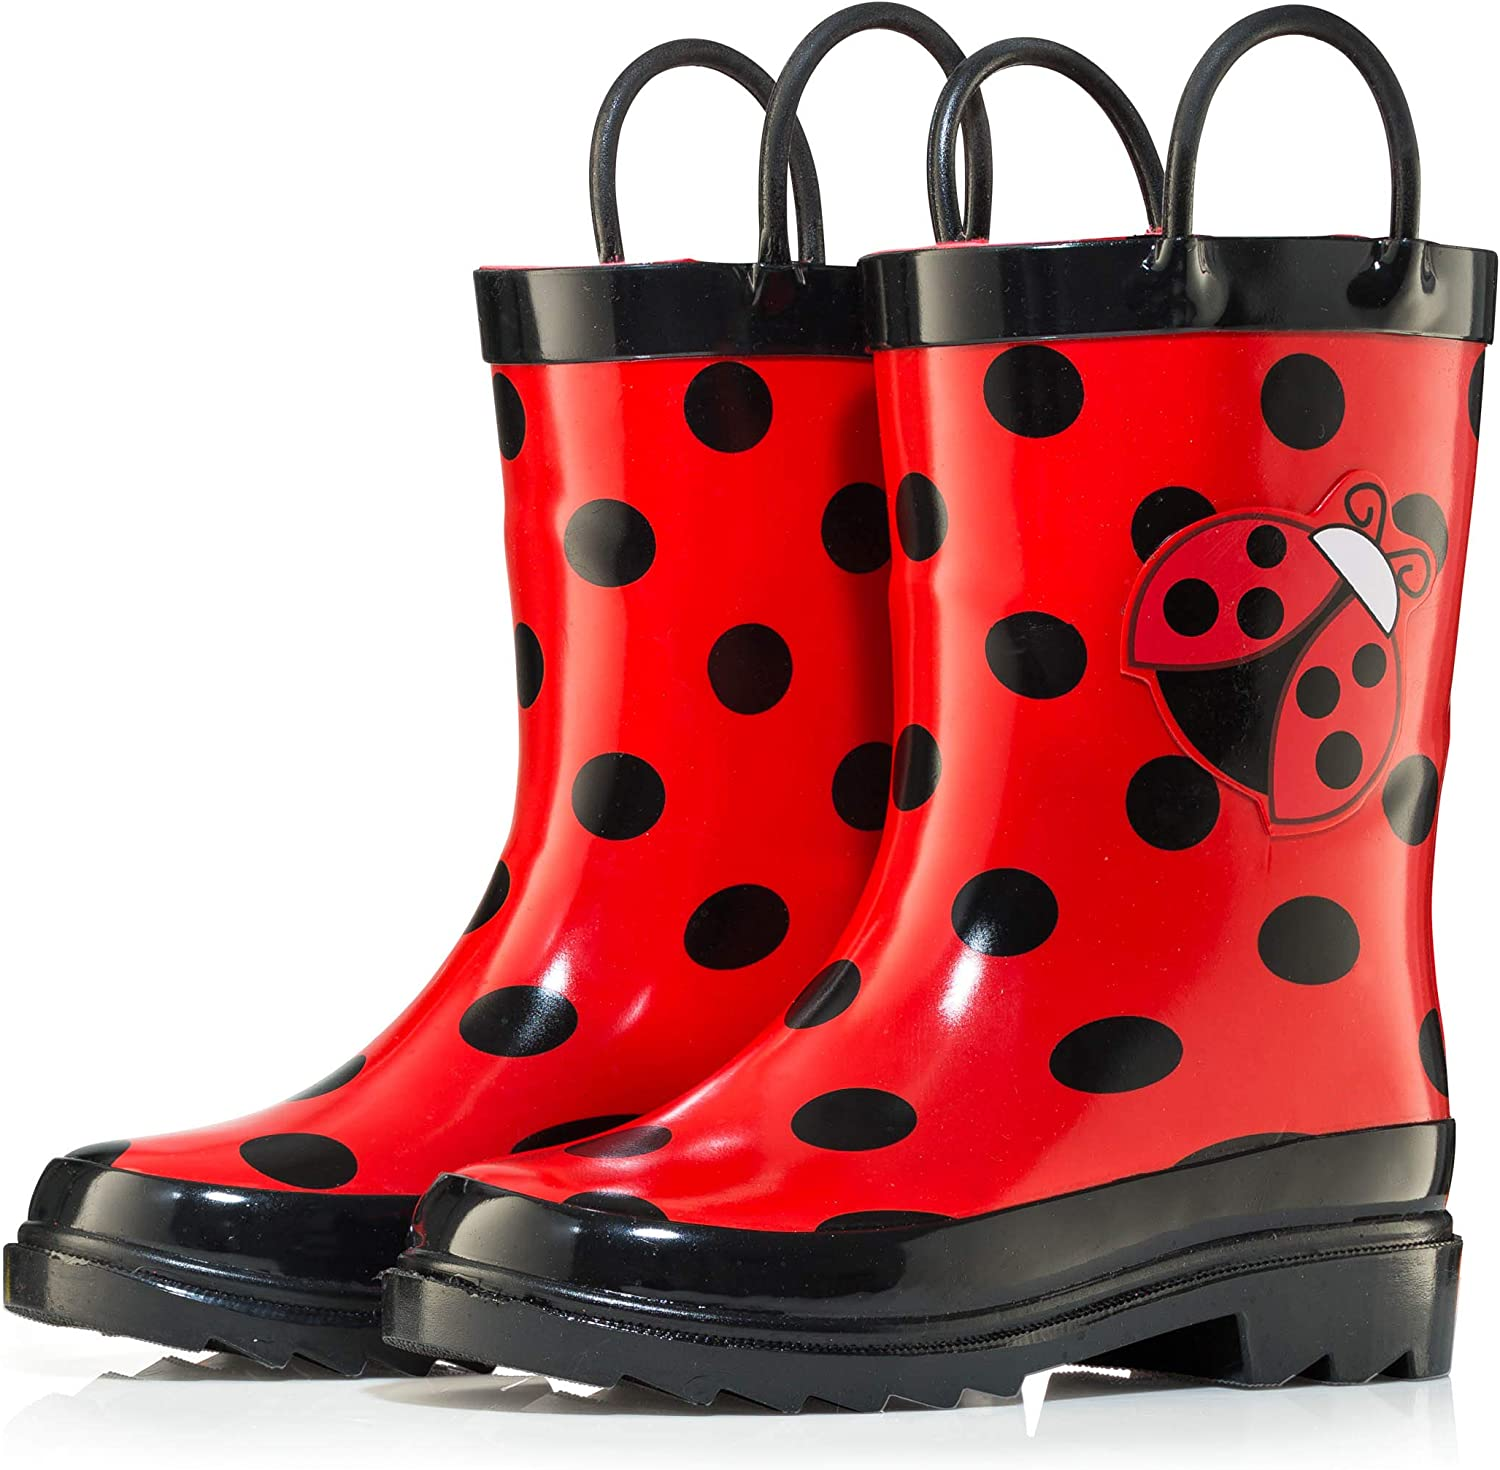 Puddle Play Toddler and Little Kids Waterproof Rubber Rain Boots with Easy-On Handles Boys and Girls Colors and Designs